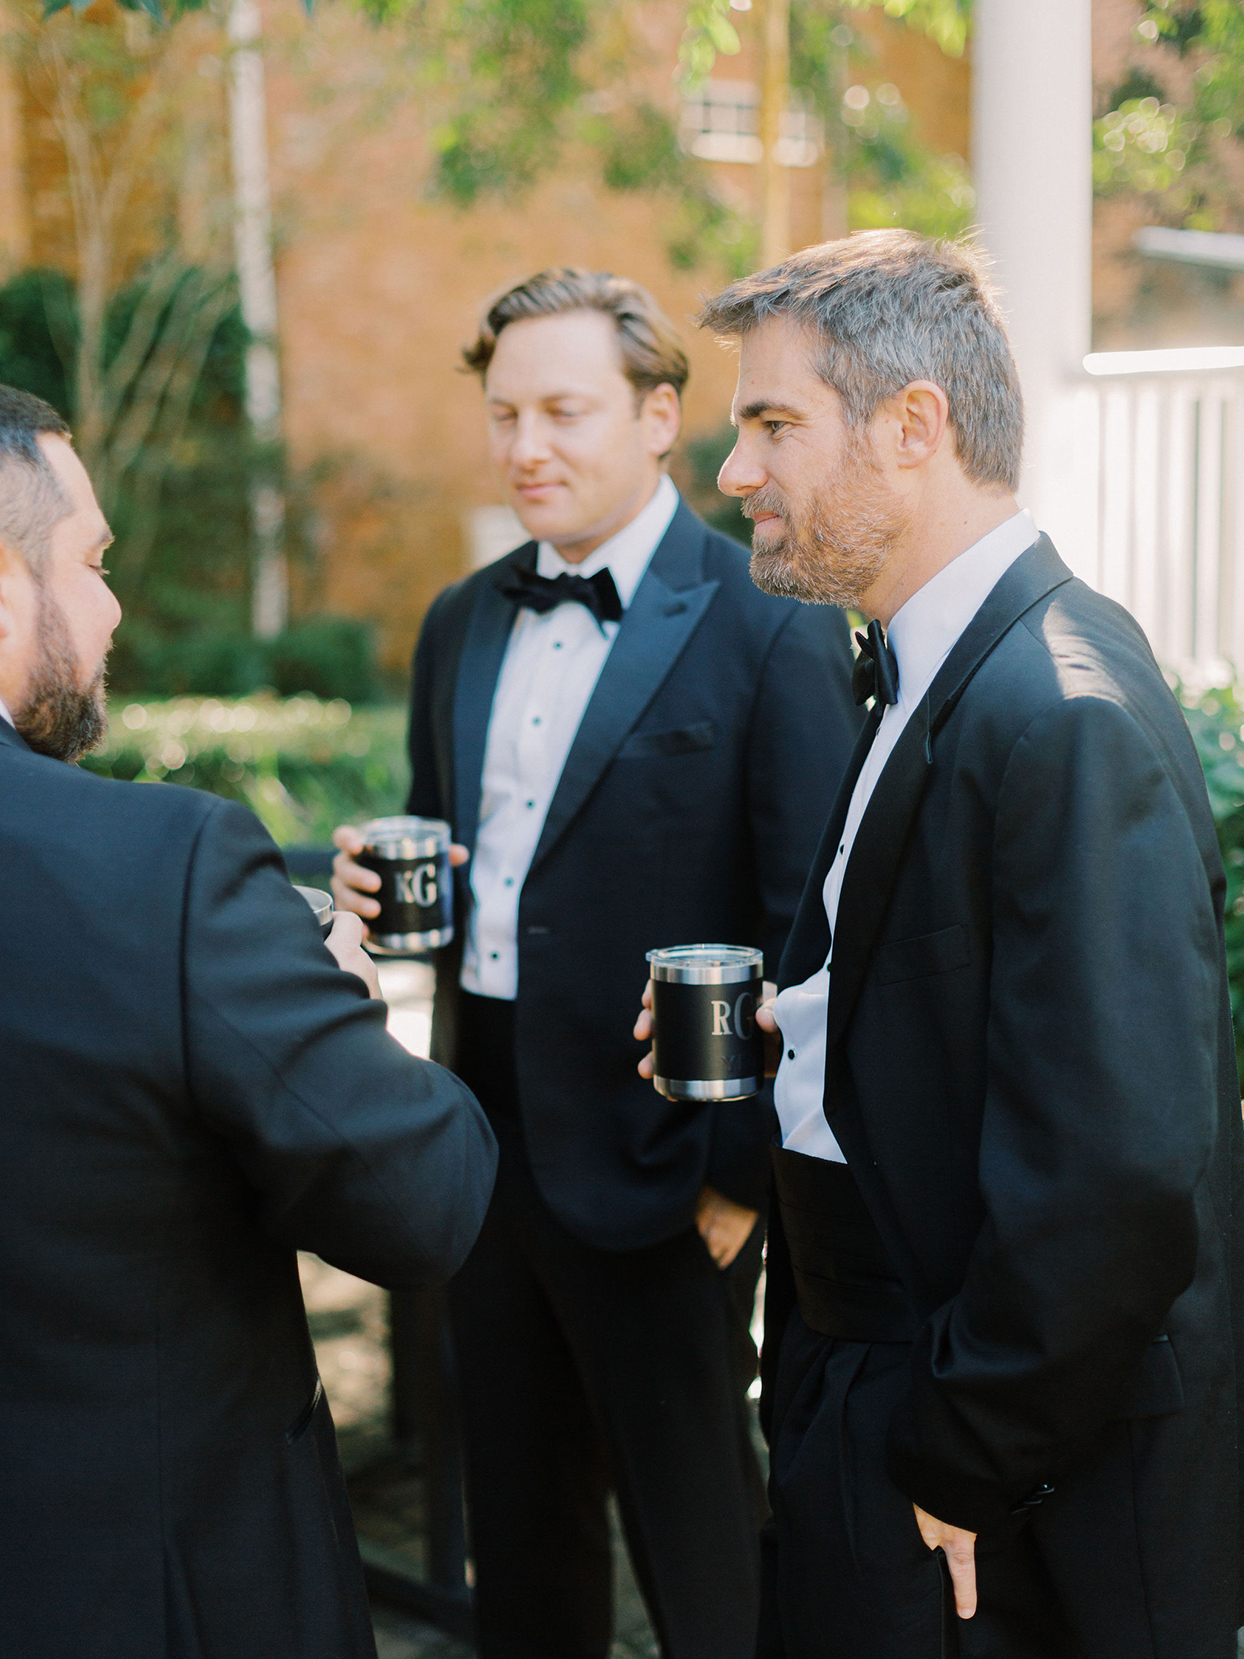 megan parking wedding men with monogrammed drinking vessels